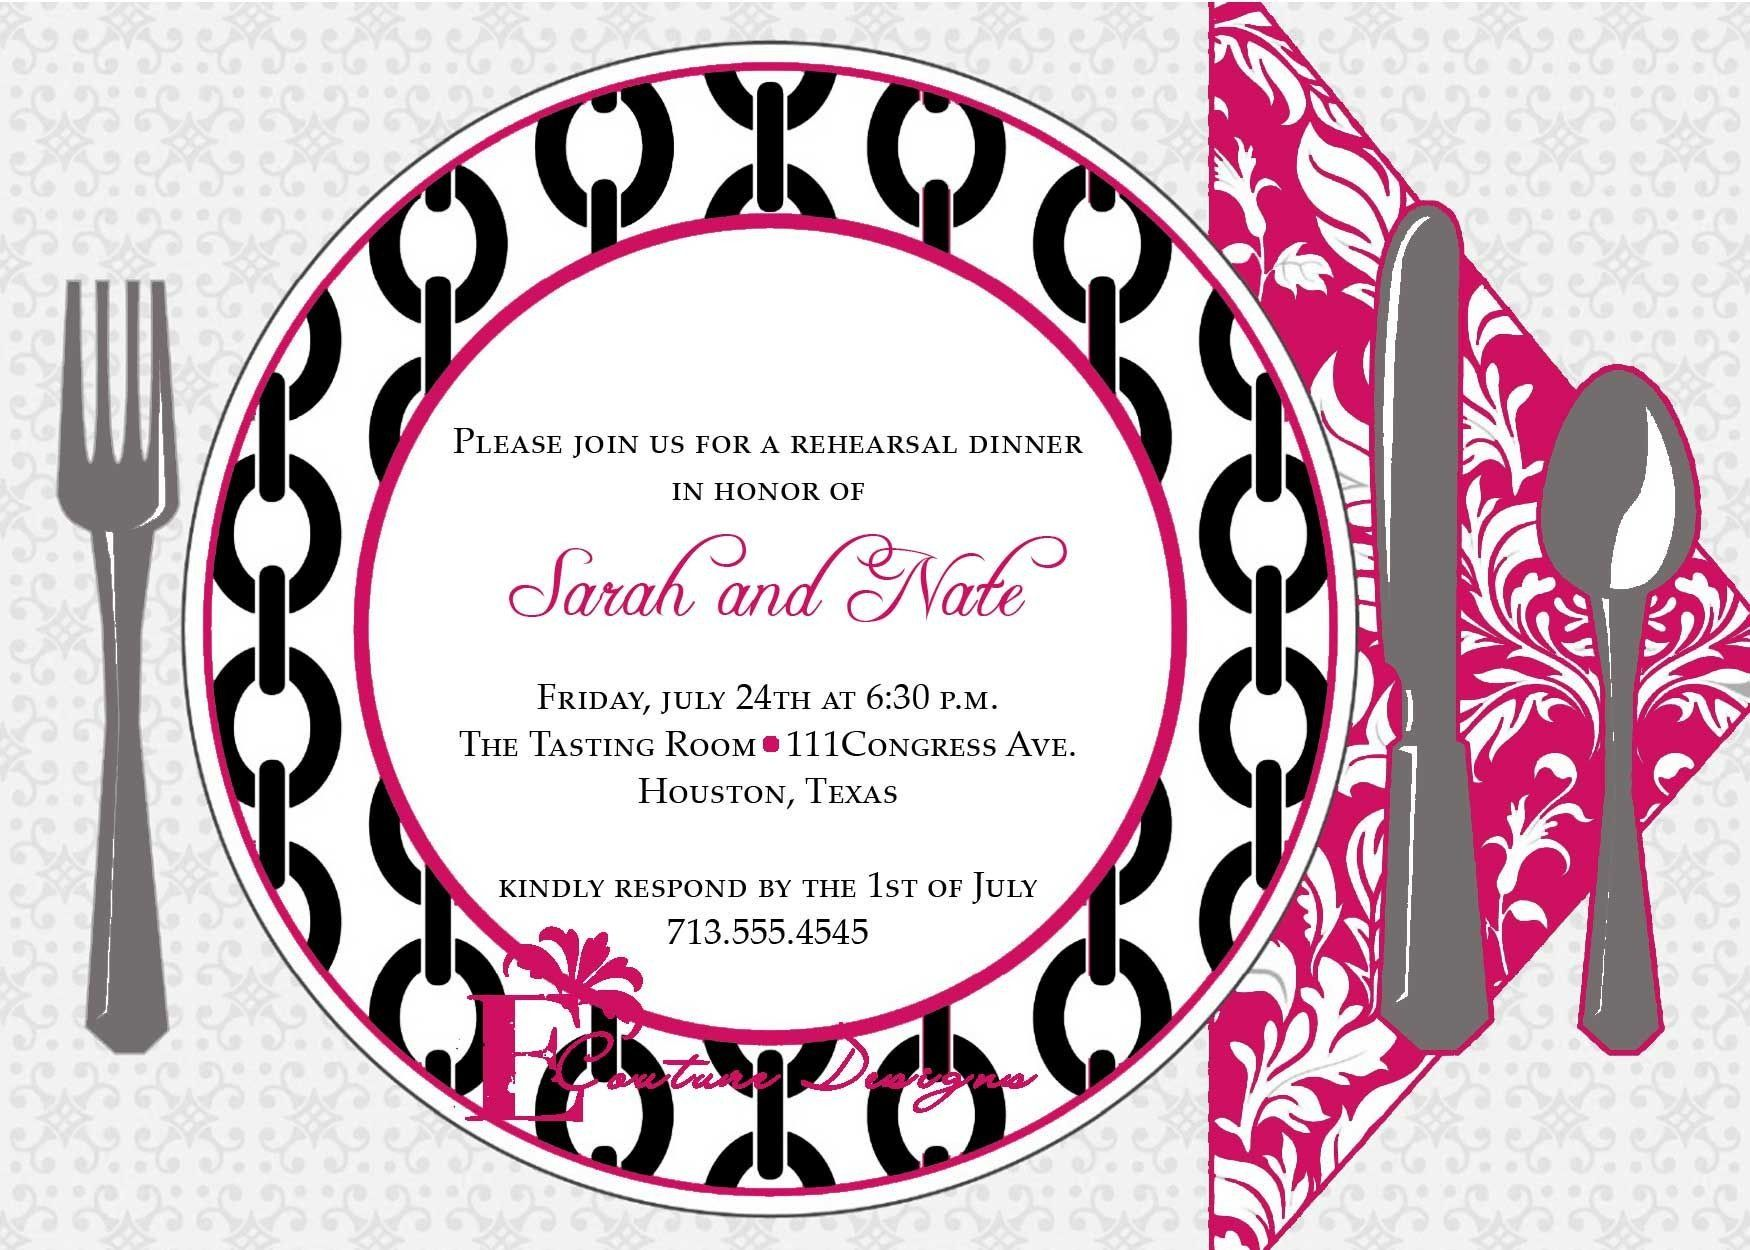 Free Dinner Invitation Templates Dinner Invitation Template Dinner Invitation Template Party Invite Template Birthday Dinner Invitation